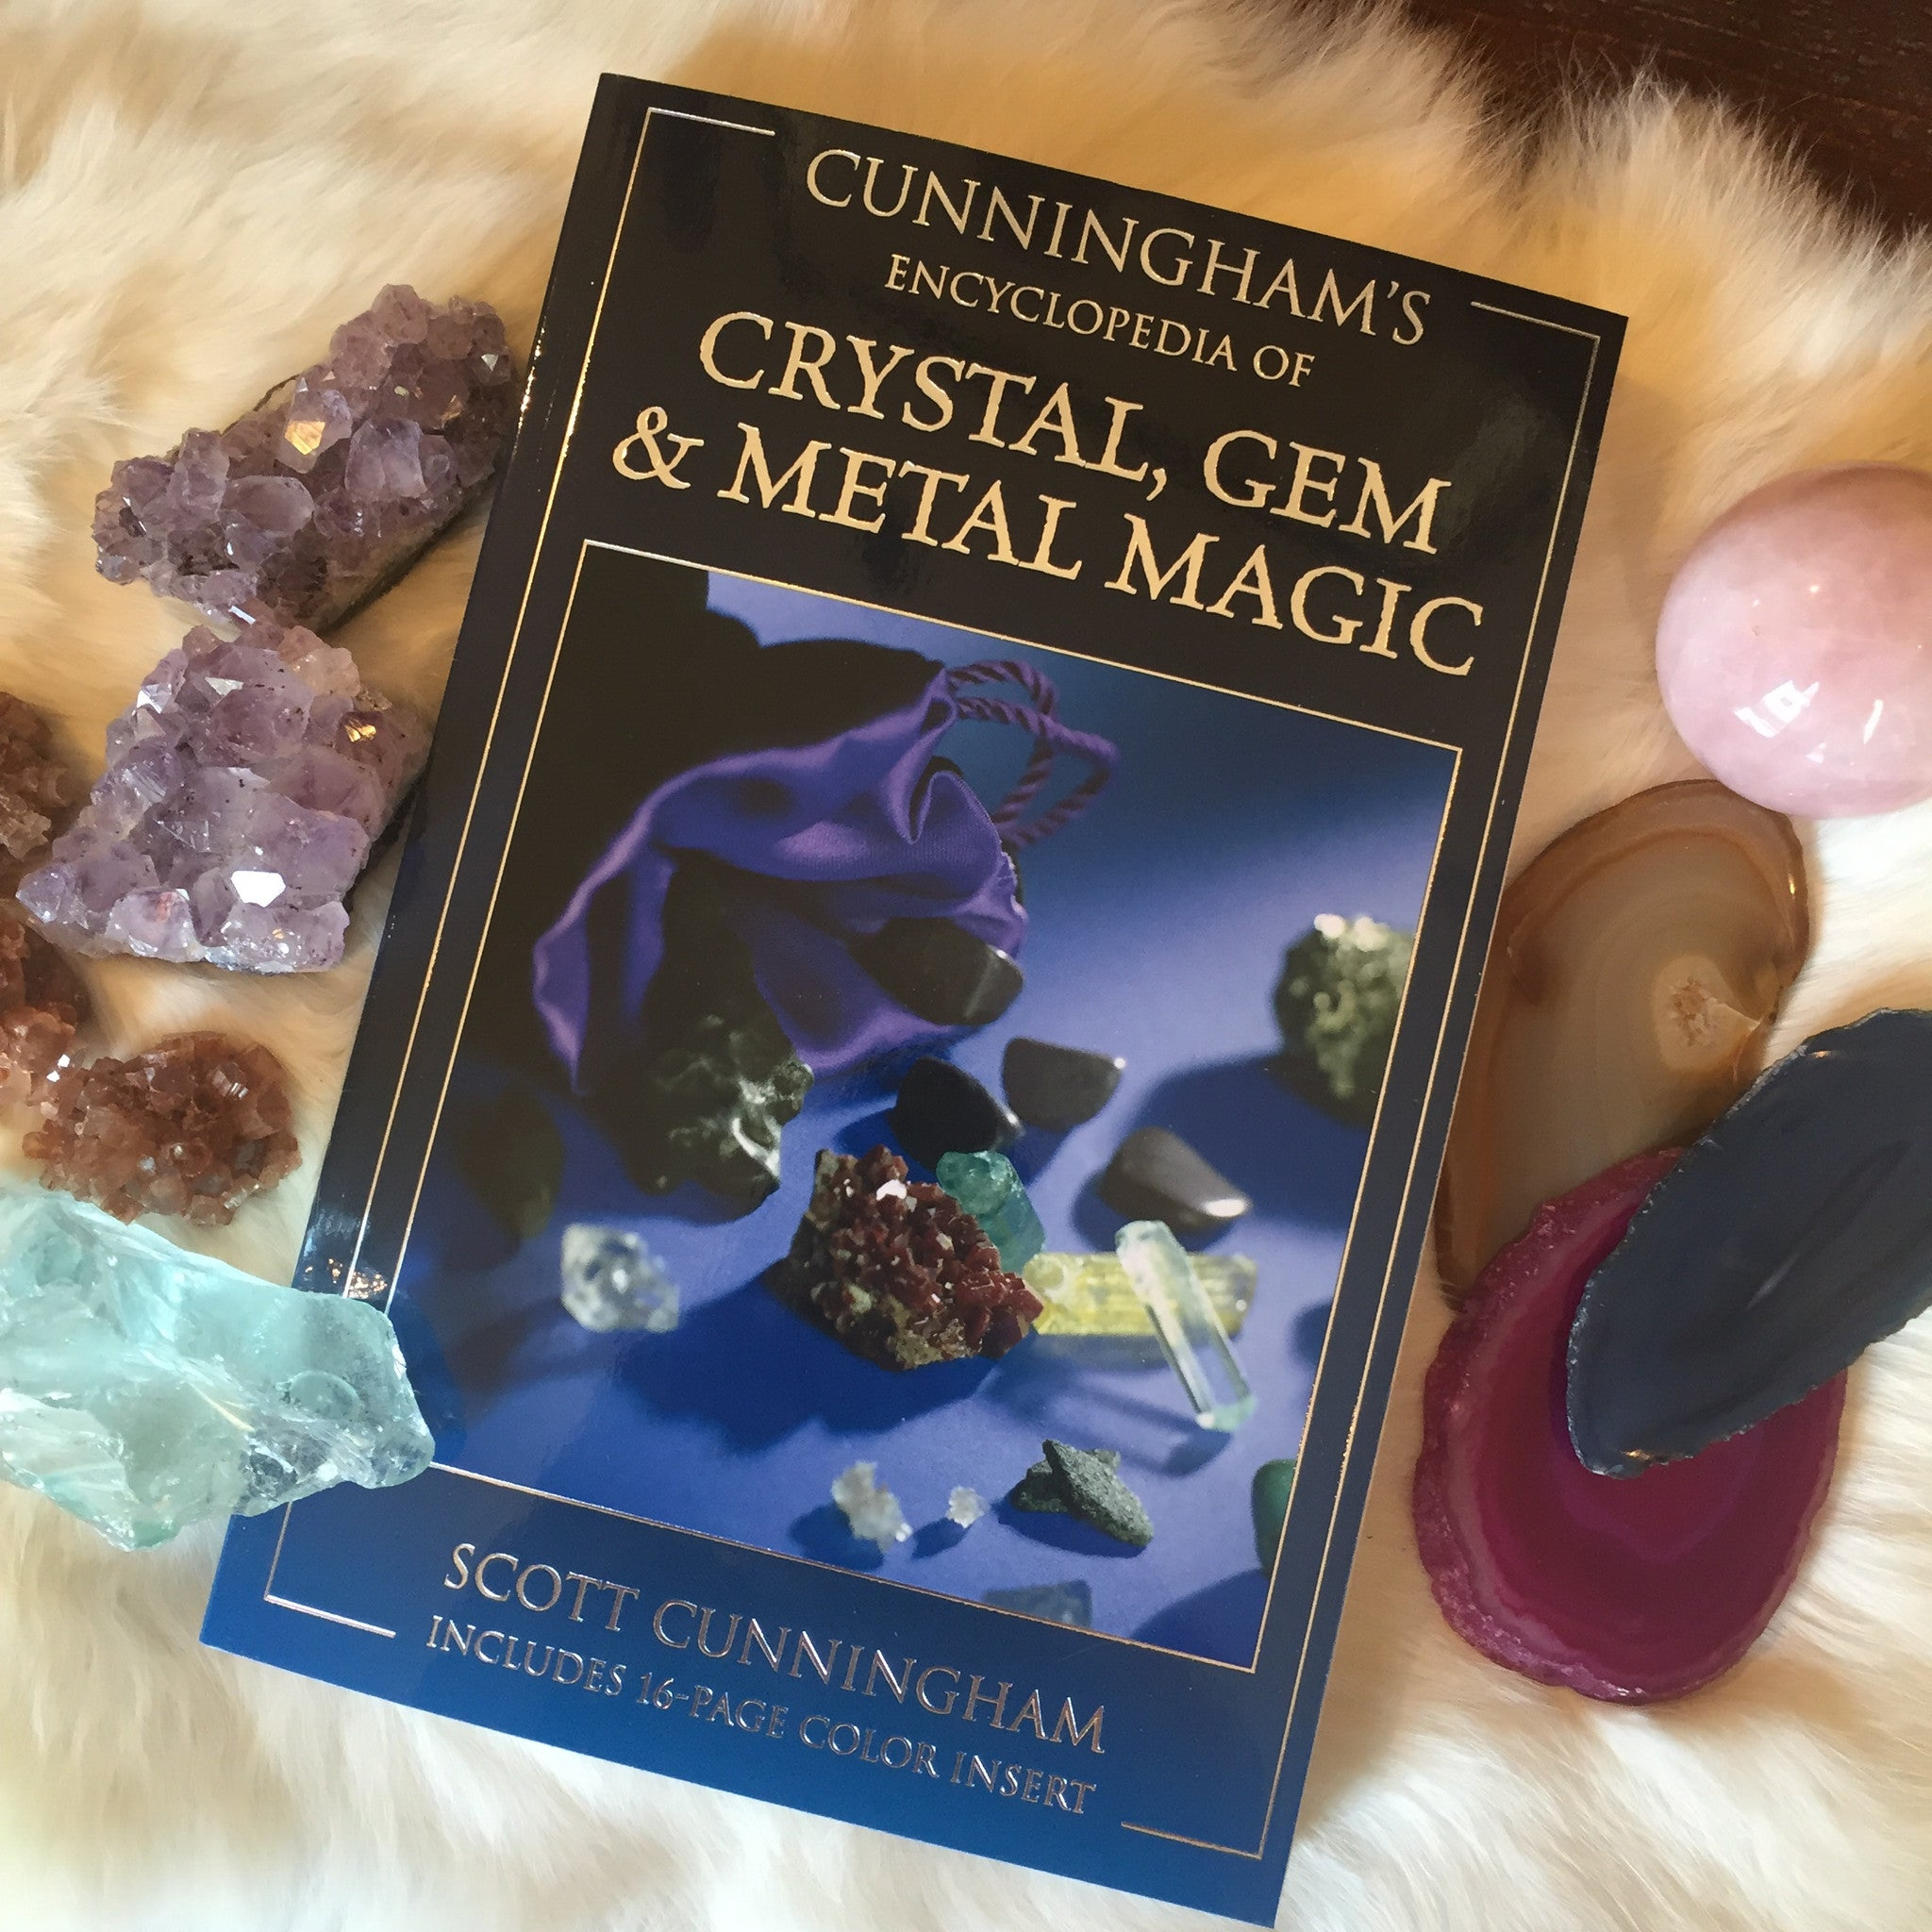 Cunninghams's Encyclopedia of Crystals, Gems, and Metal Magic